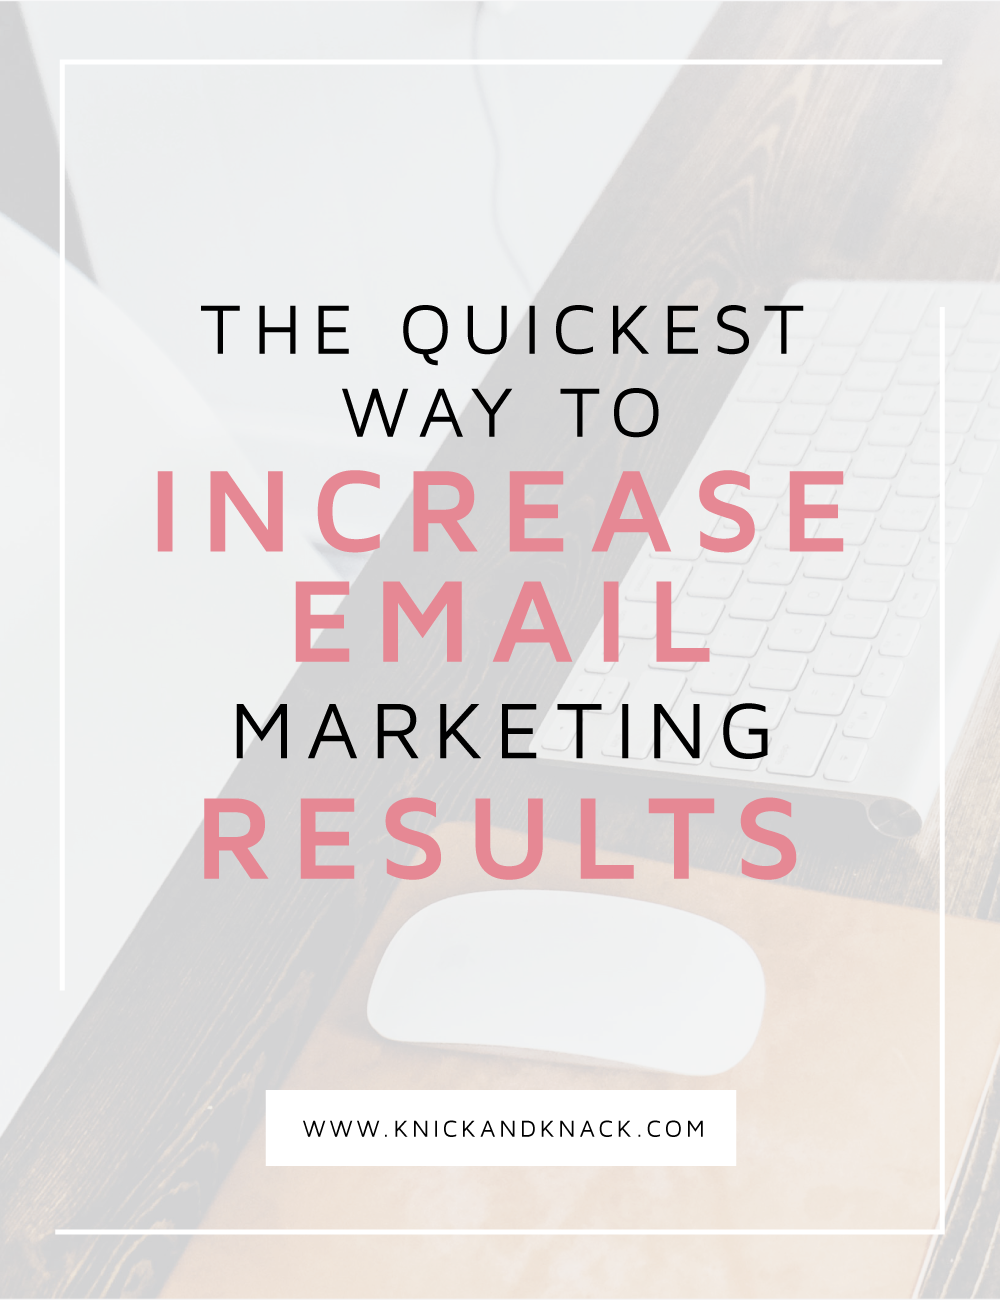 Increase email marketing results, email marketing, convert kit vs mailchimp, email platform, convert kit, email list, build your email list